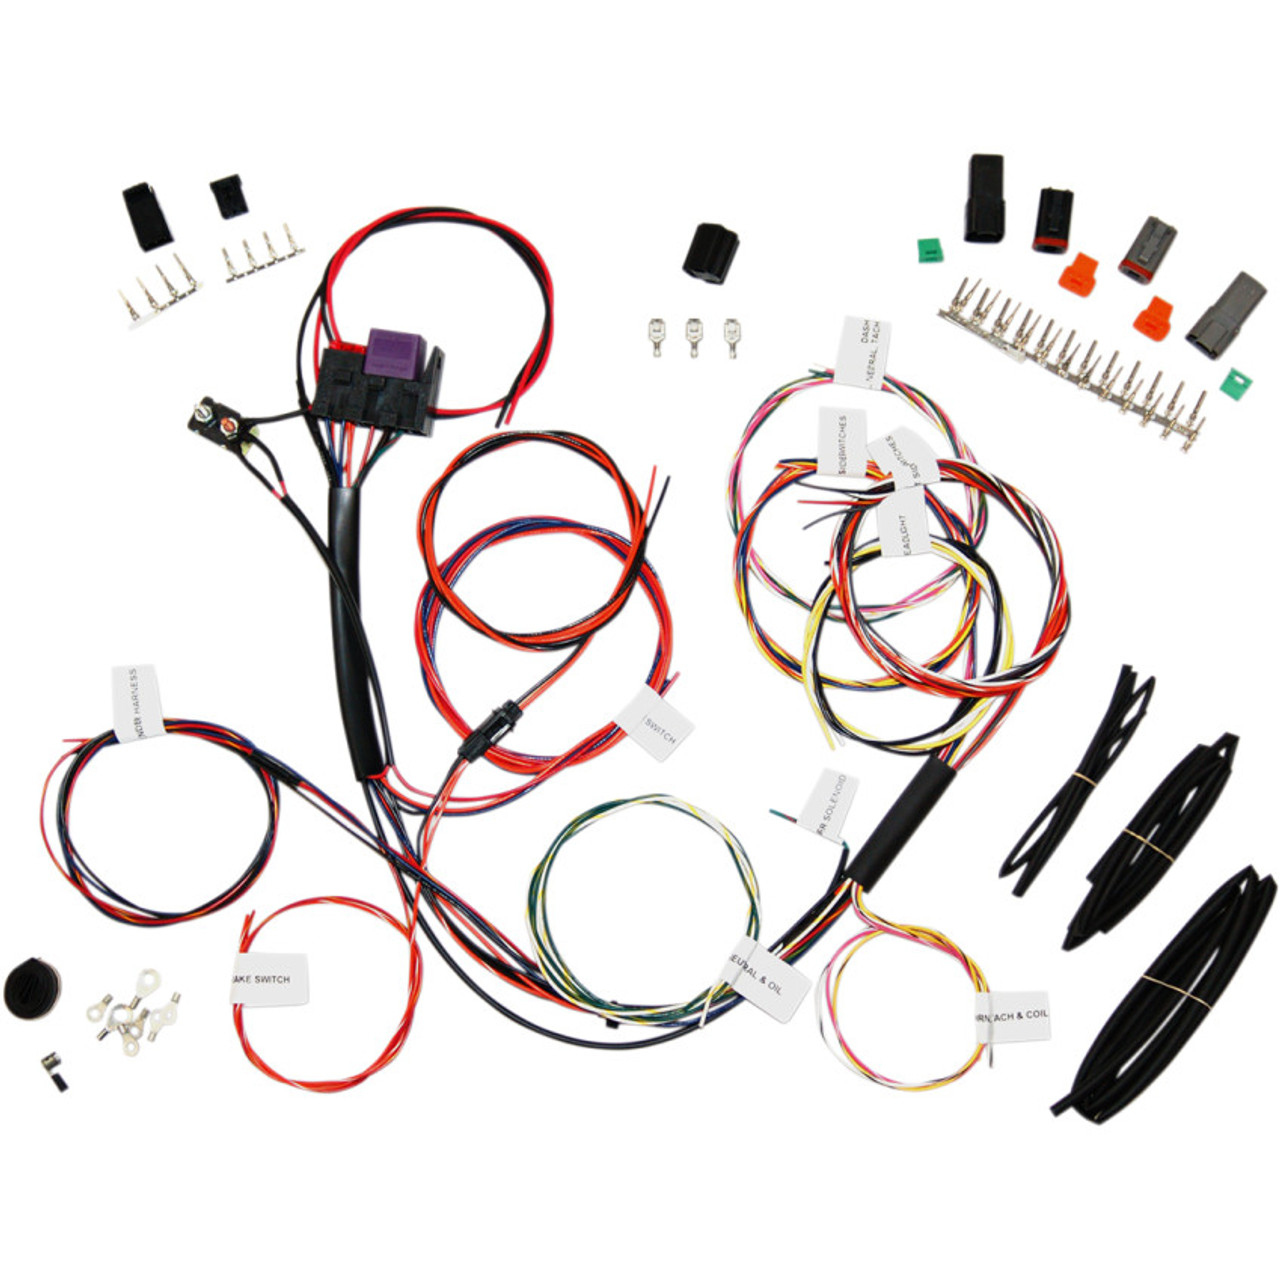 Namz Complete Bike Wiring Harness - No Signals - NCBH-01-C - Get Lowered  CyclesGet Lowered Cycles